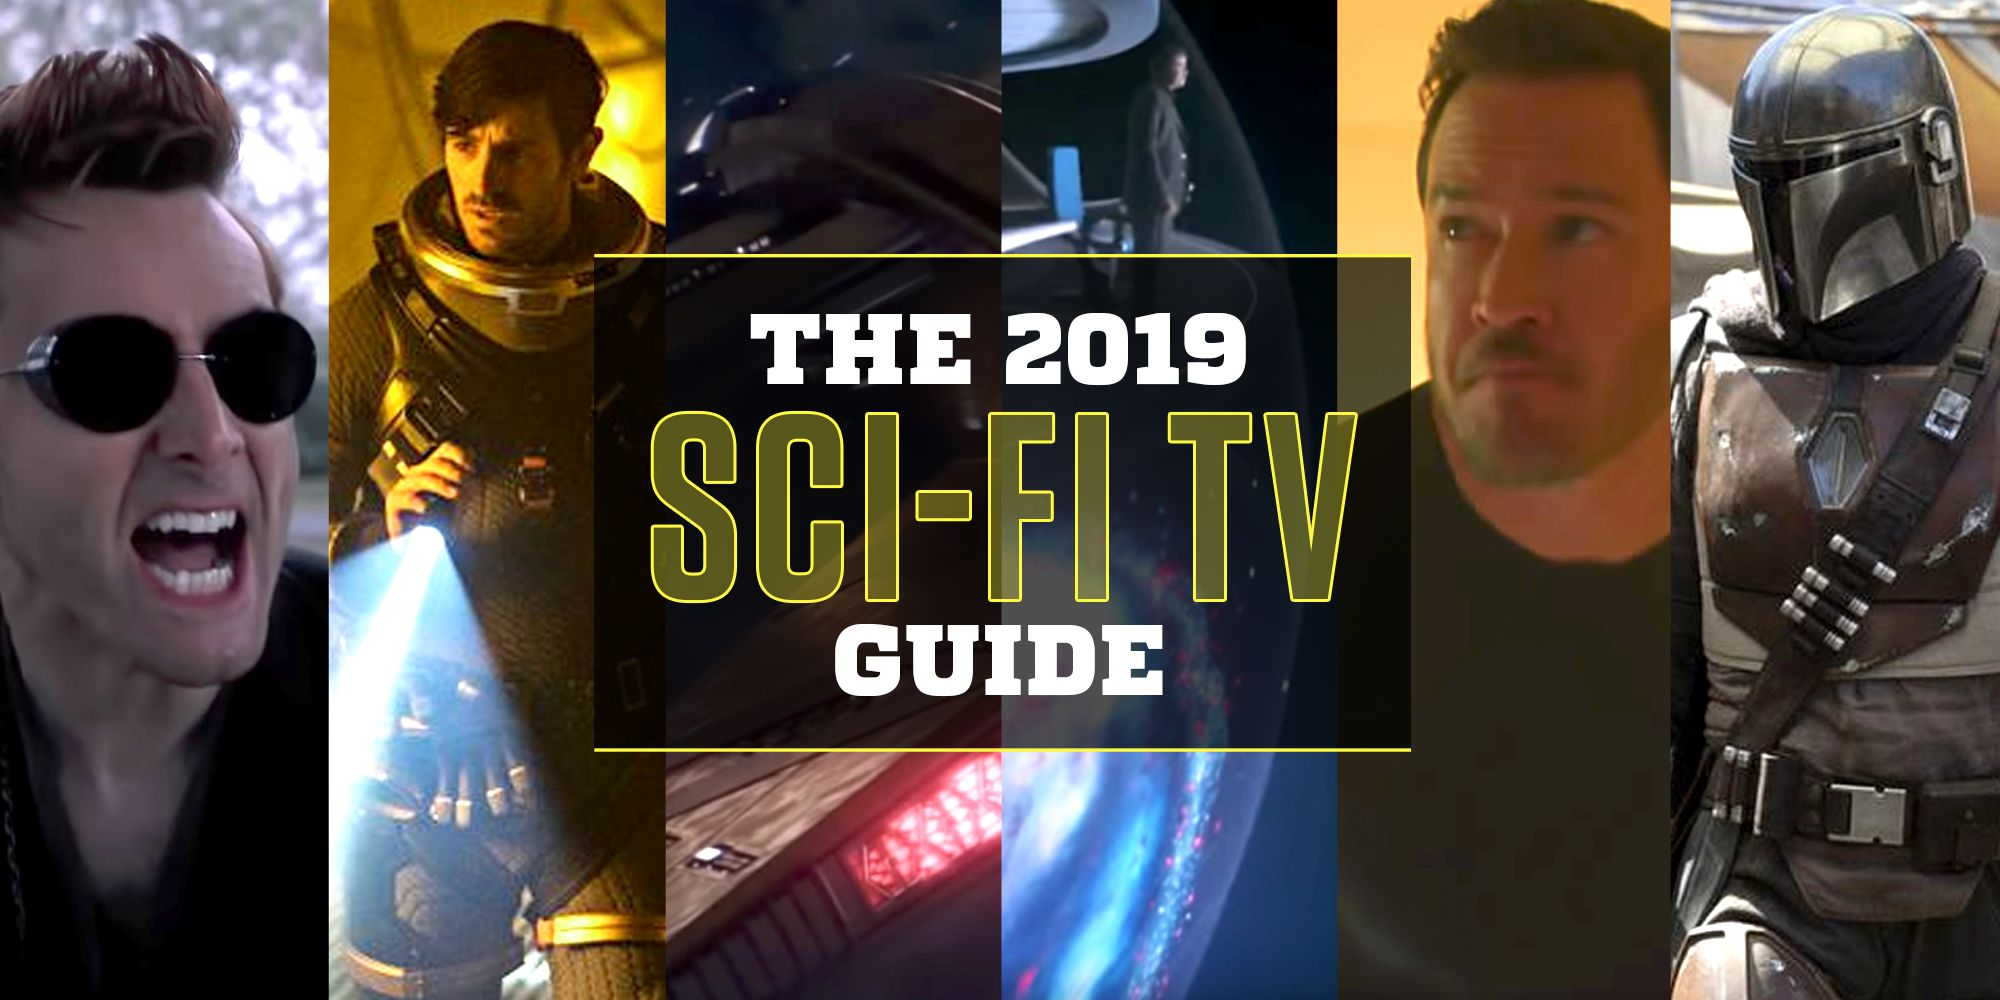 The 2019 Sci-Fi TV Guide